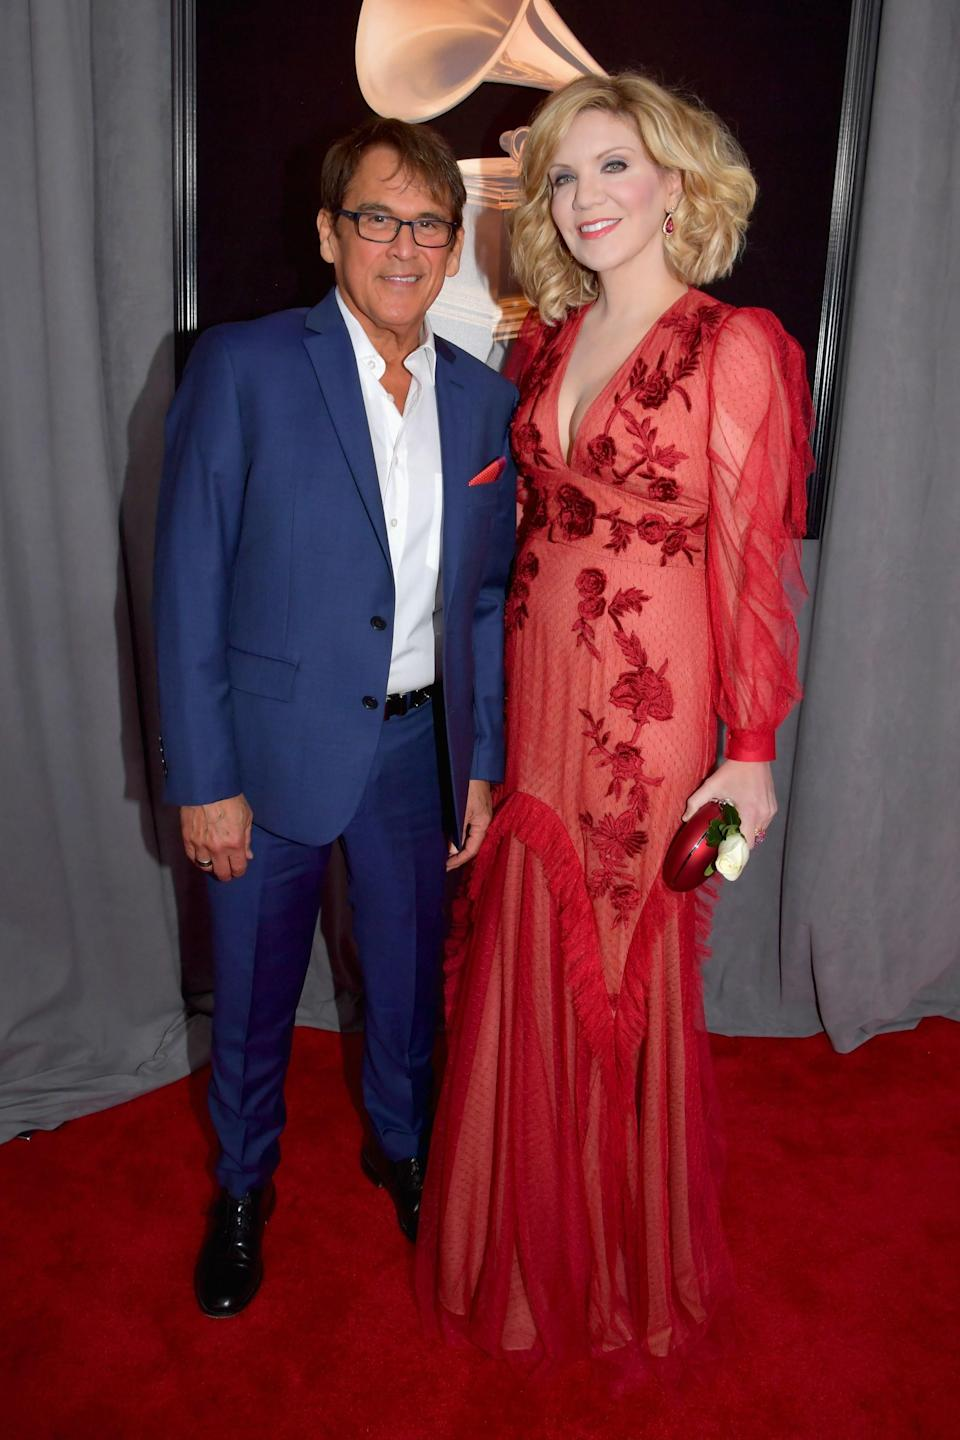 """<h1 class=""""title"""">Ron Browning and Alison Krauss in Sachin & Babi</h1><cite class=""""credit"""">Photo: Getty Images</cite>"""